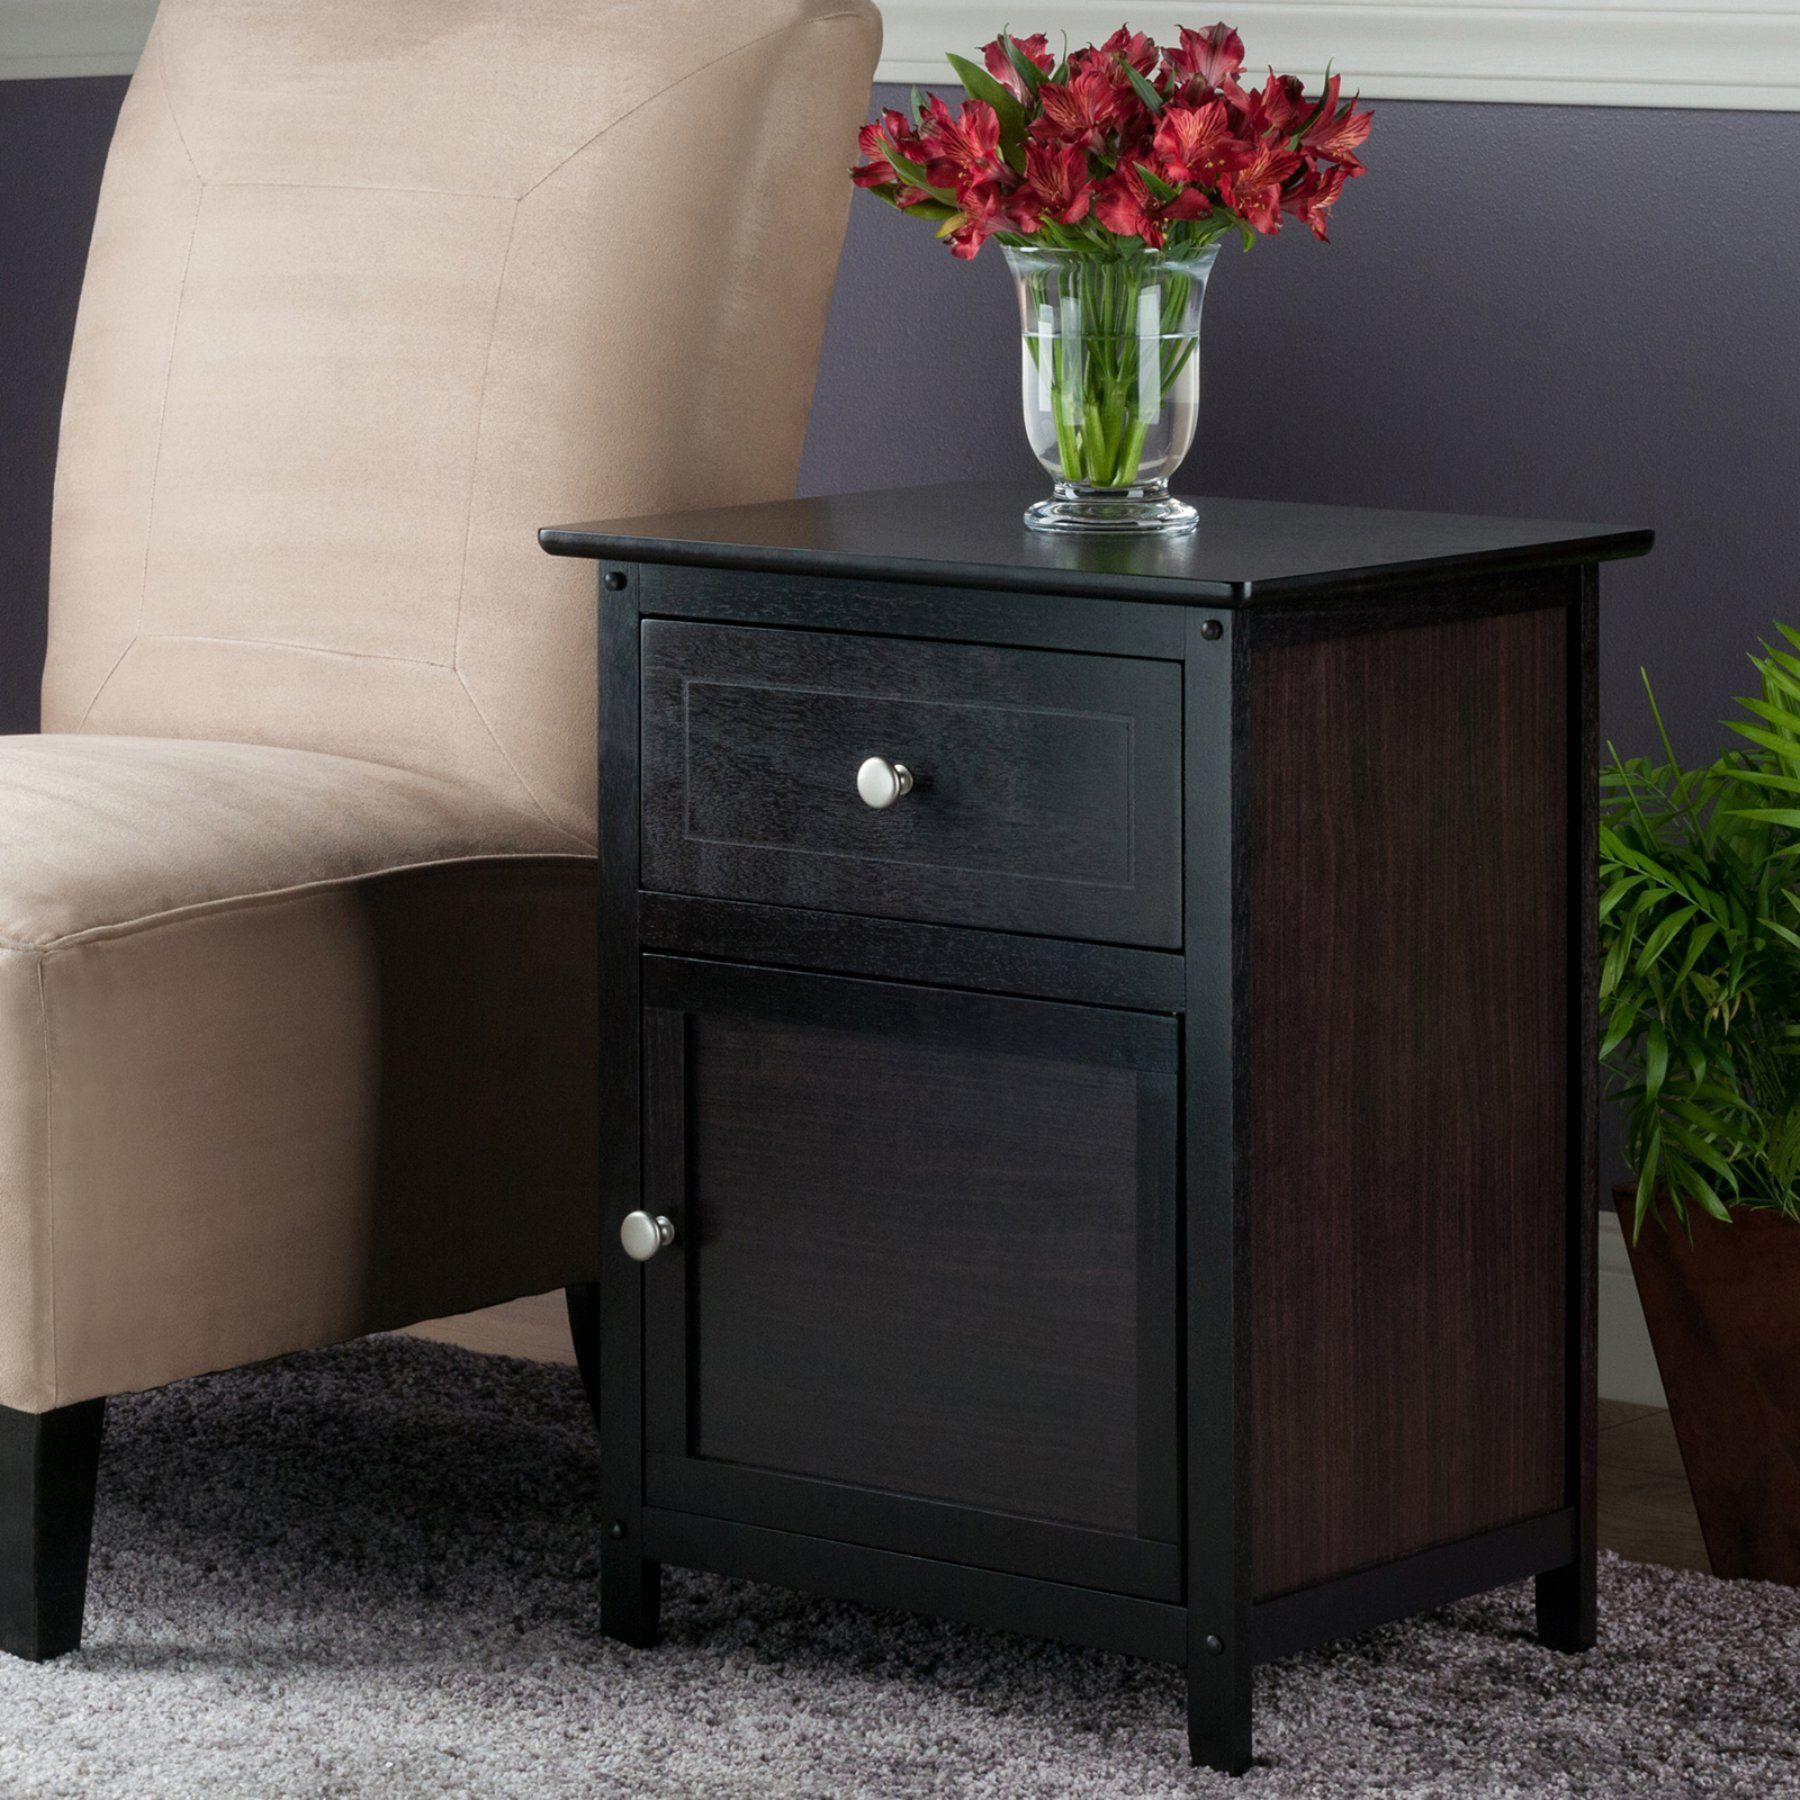 Cm4265dk E Baldwin Espresso Wood Finish End Table With Drawers For